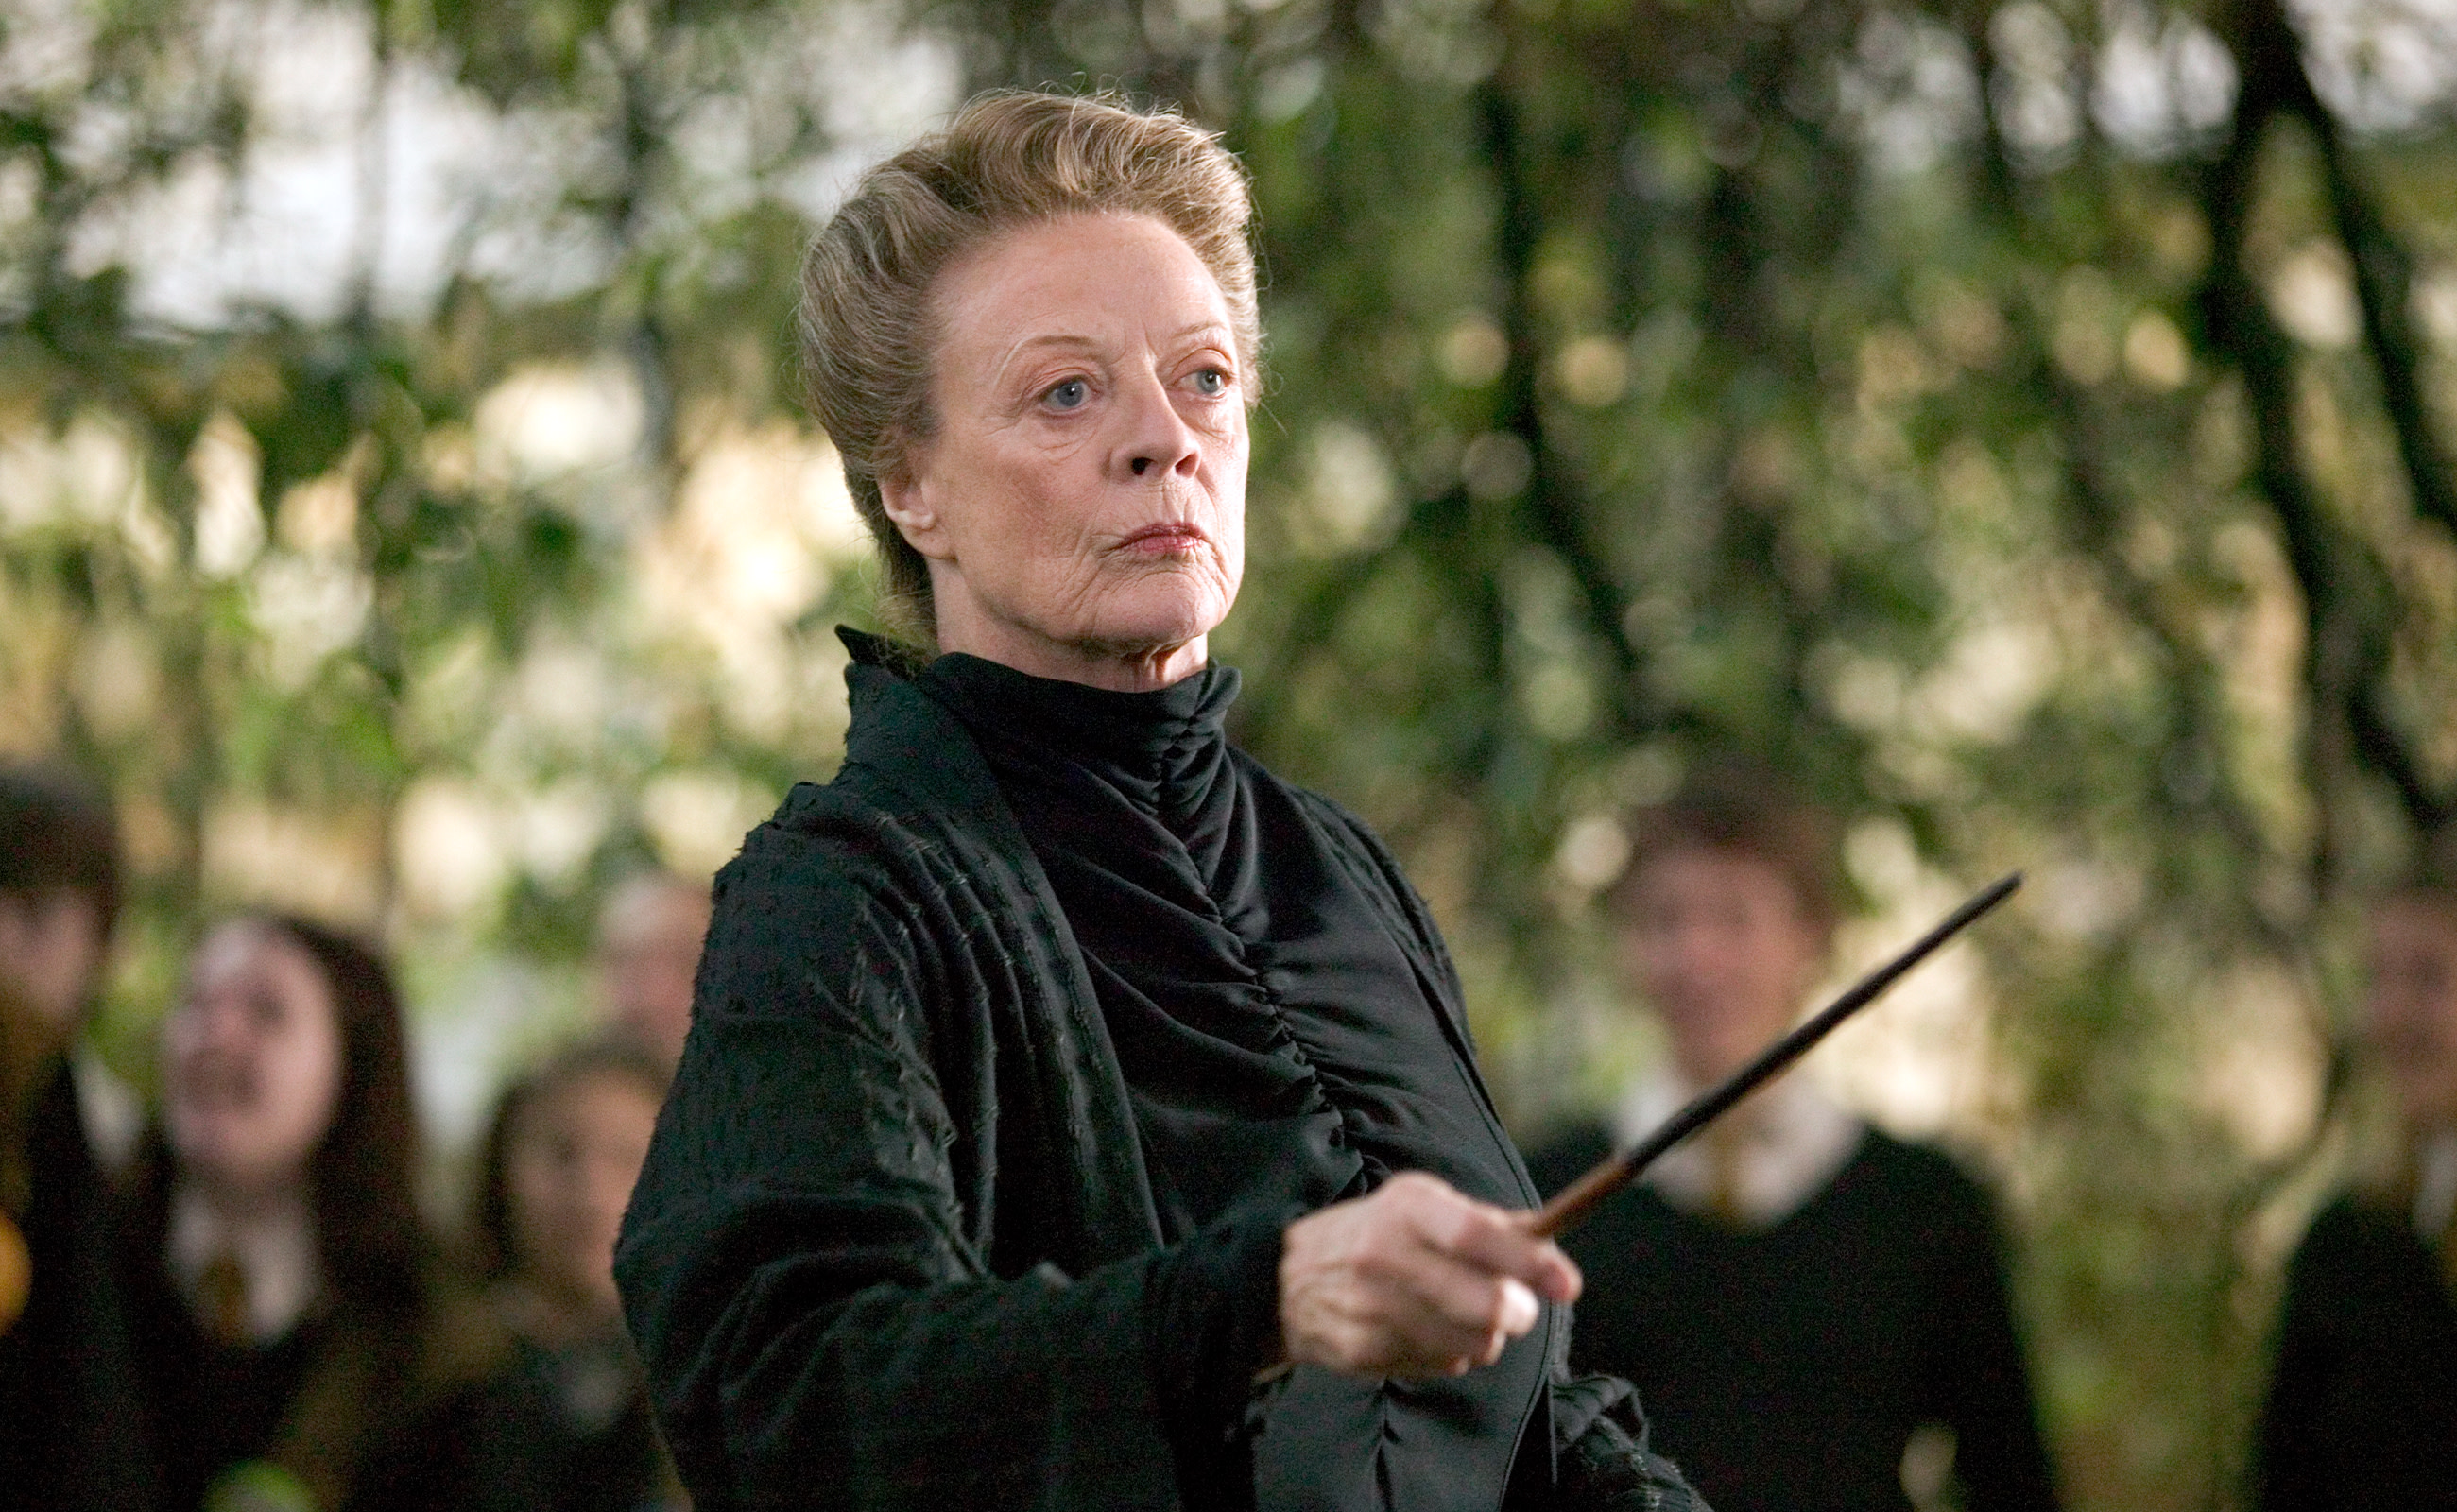 mcgonagall-web-header-wand